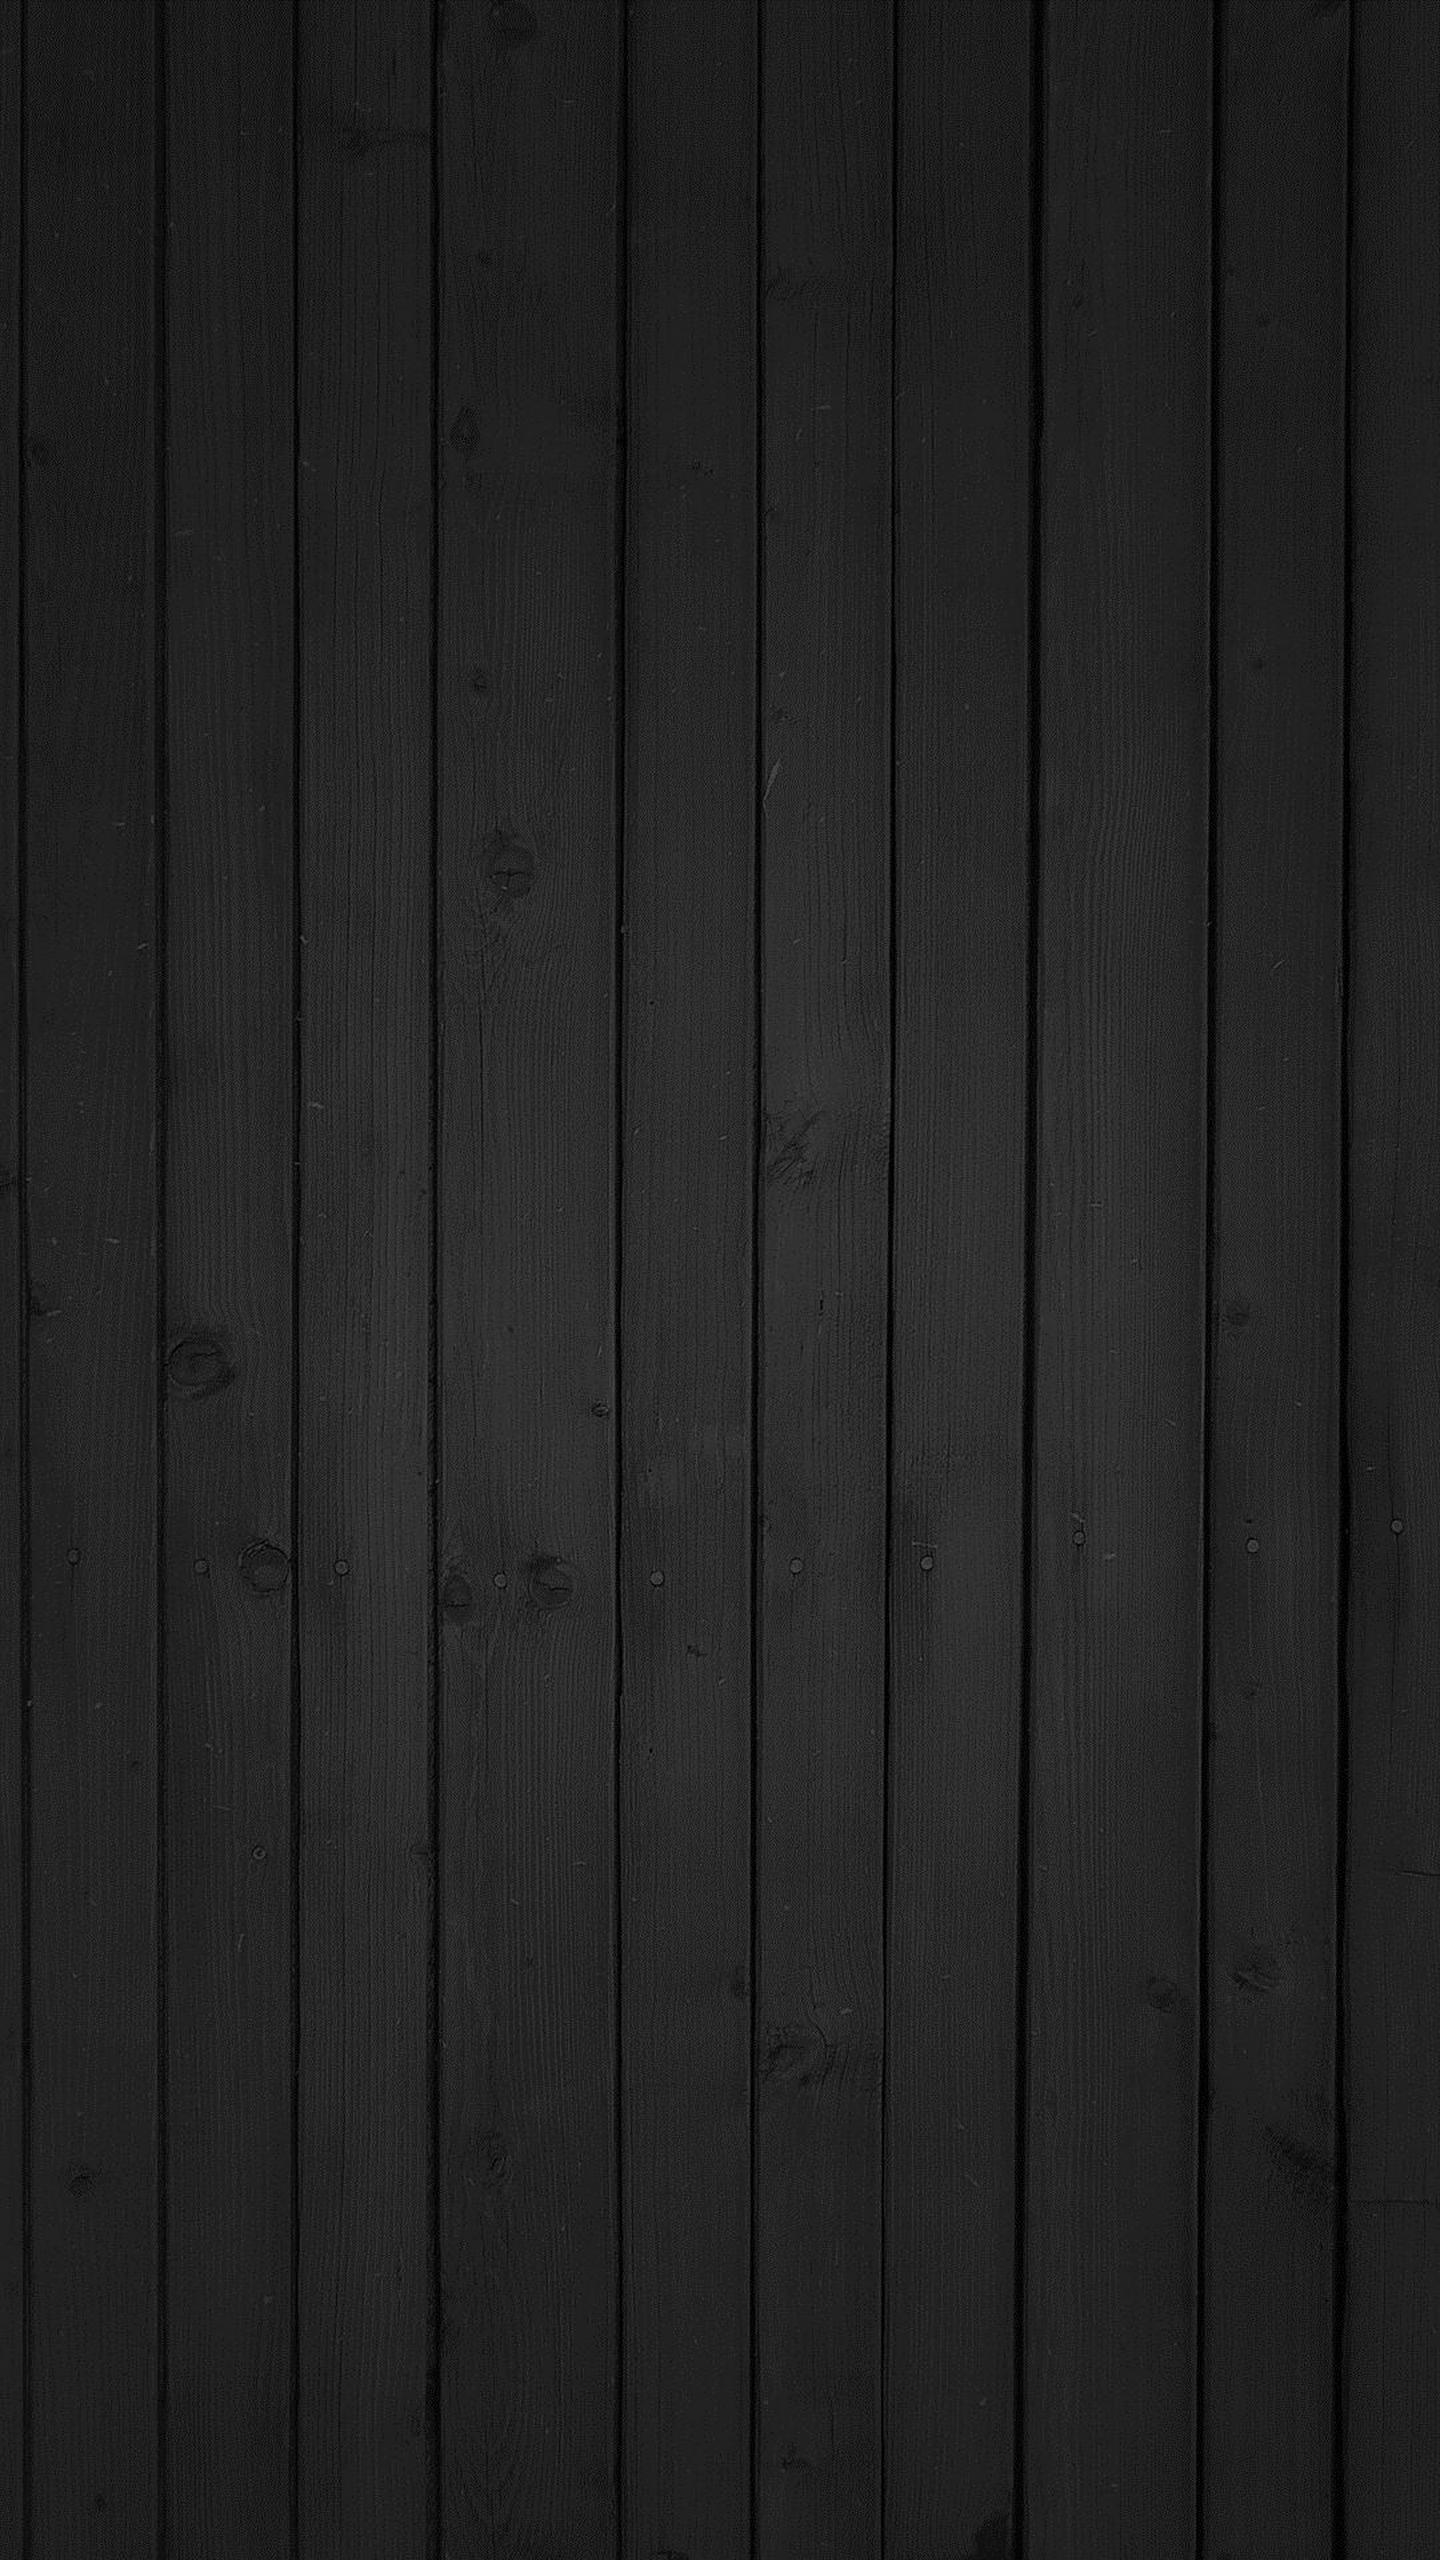 Vertical Black Wood Beams Galaxy Note 4 Wallpaper Quad HD 1440x2560 1440x2560